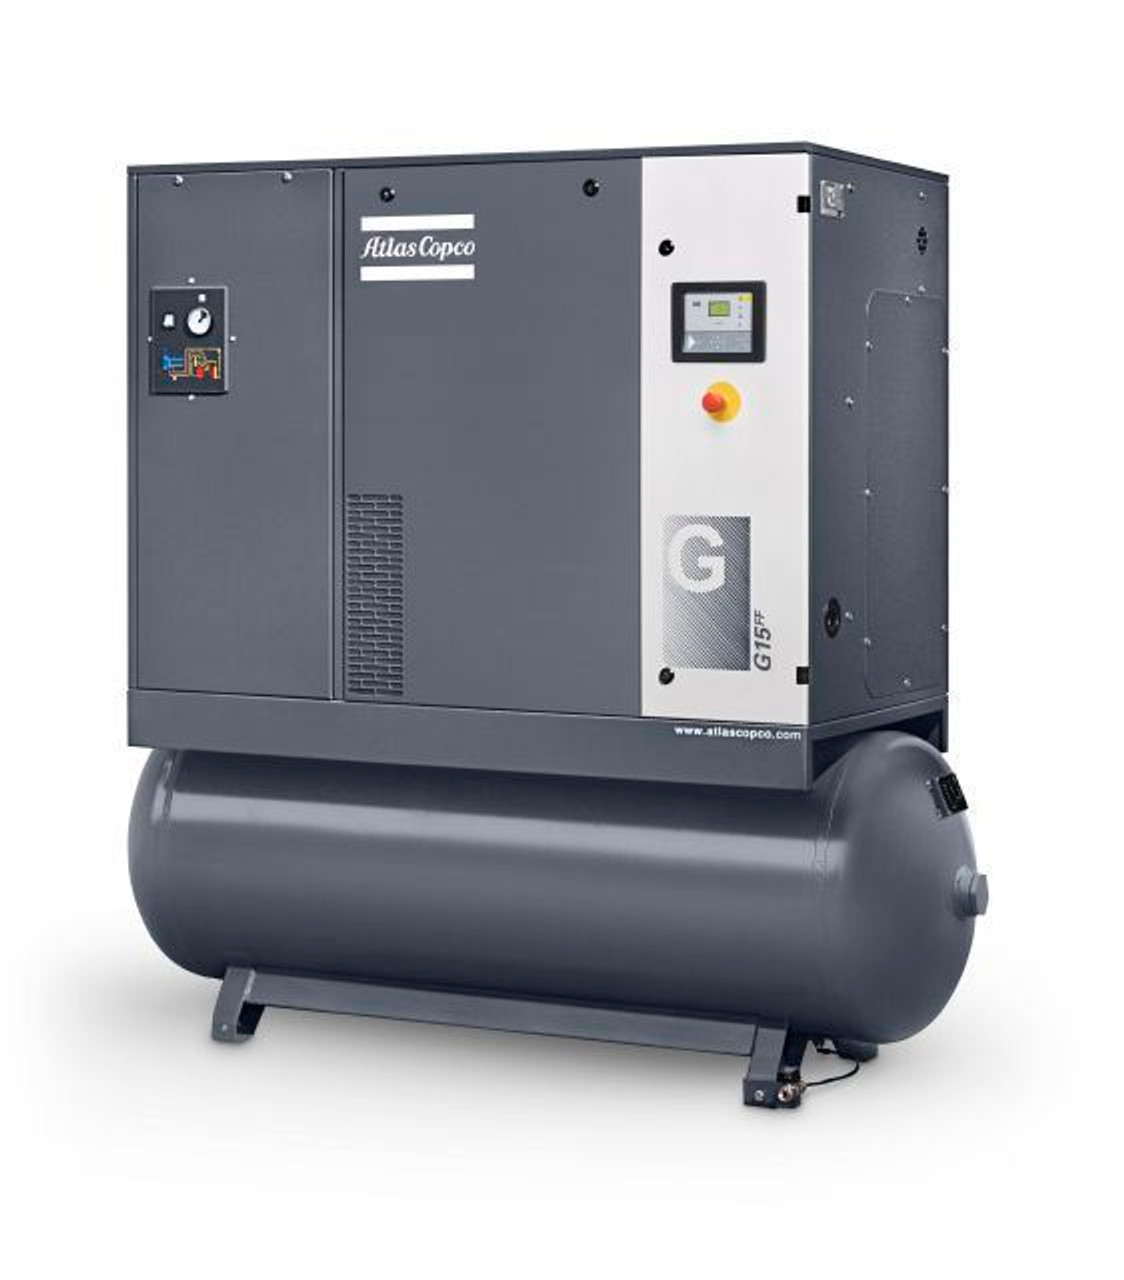 Full Featured Air Compressor includes Dryer